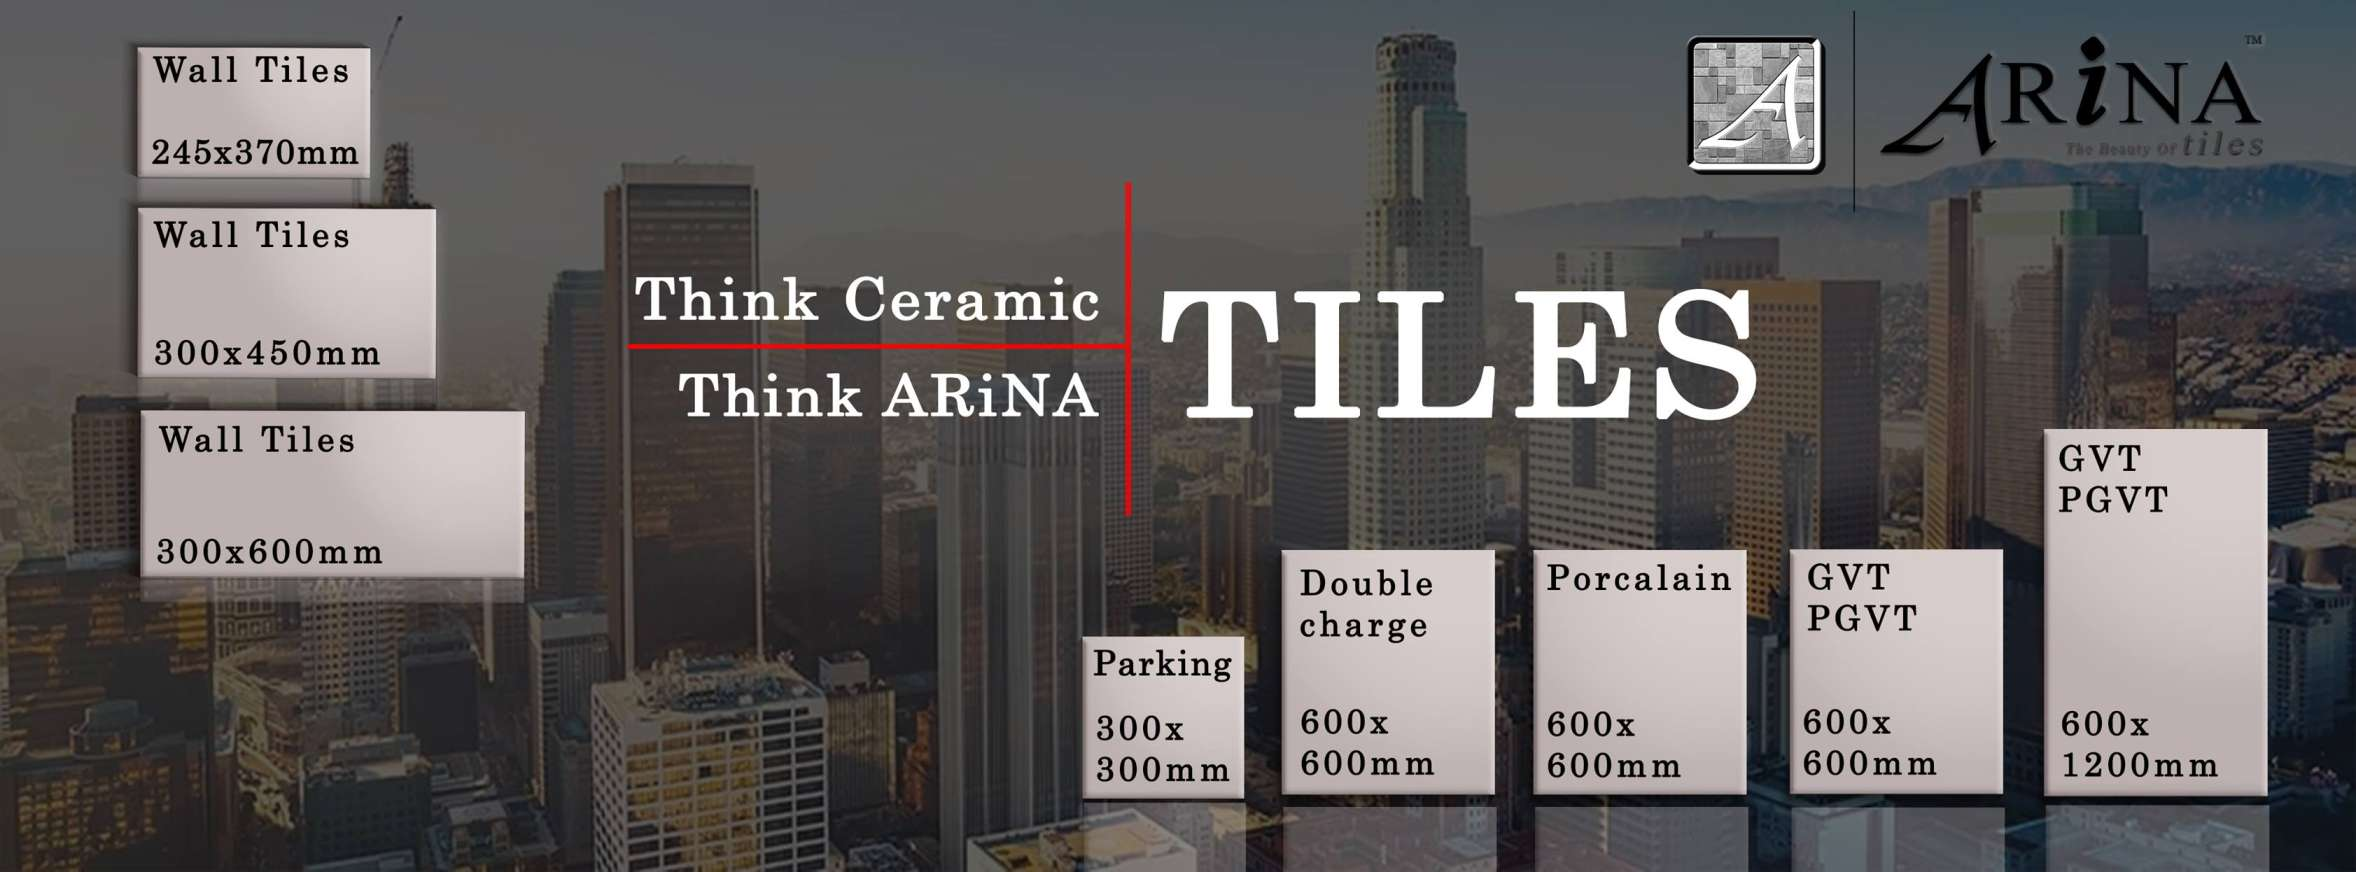 Our CLients Arina Tiles